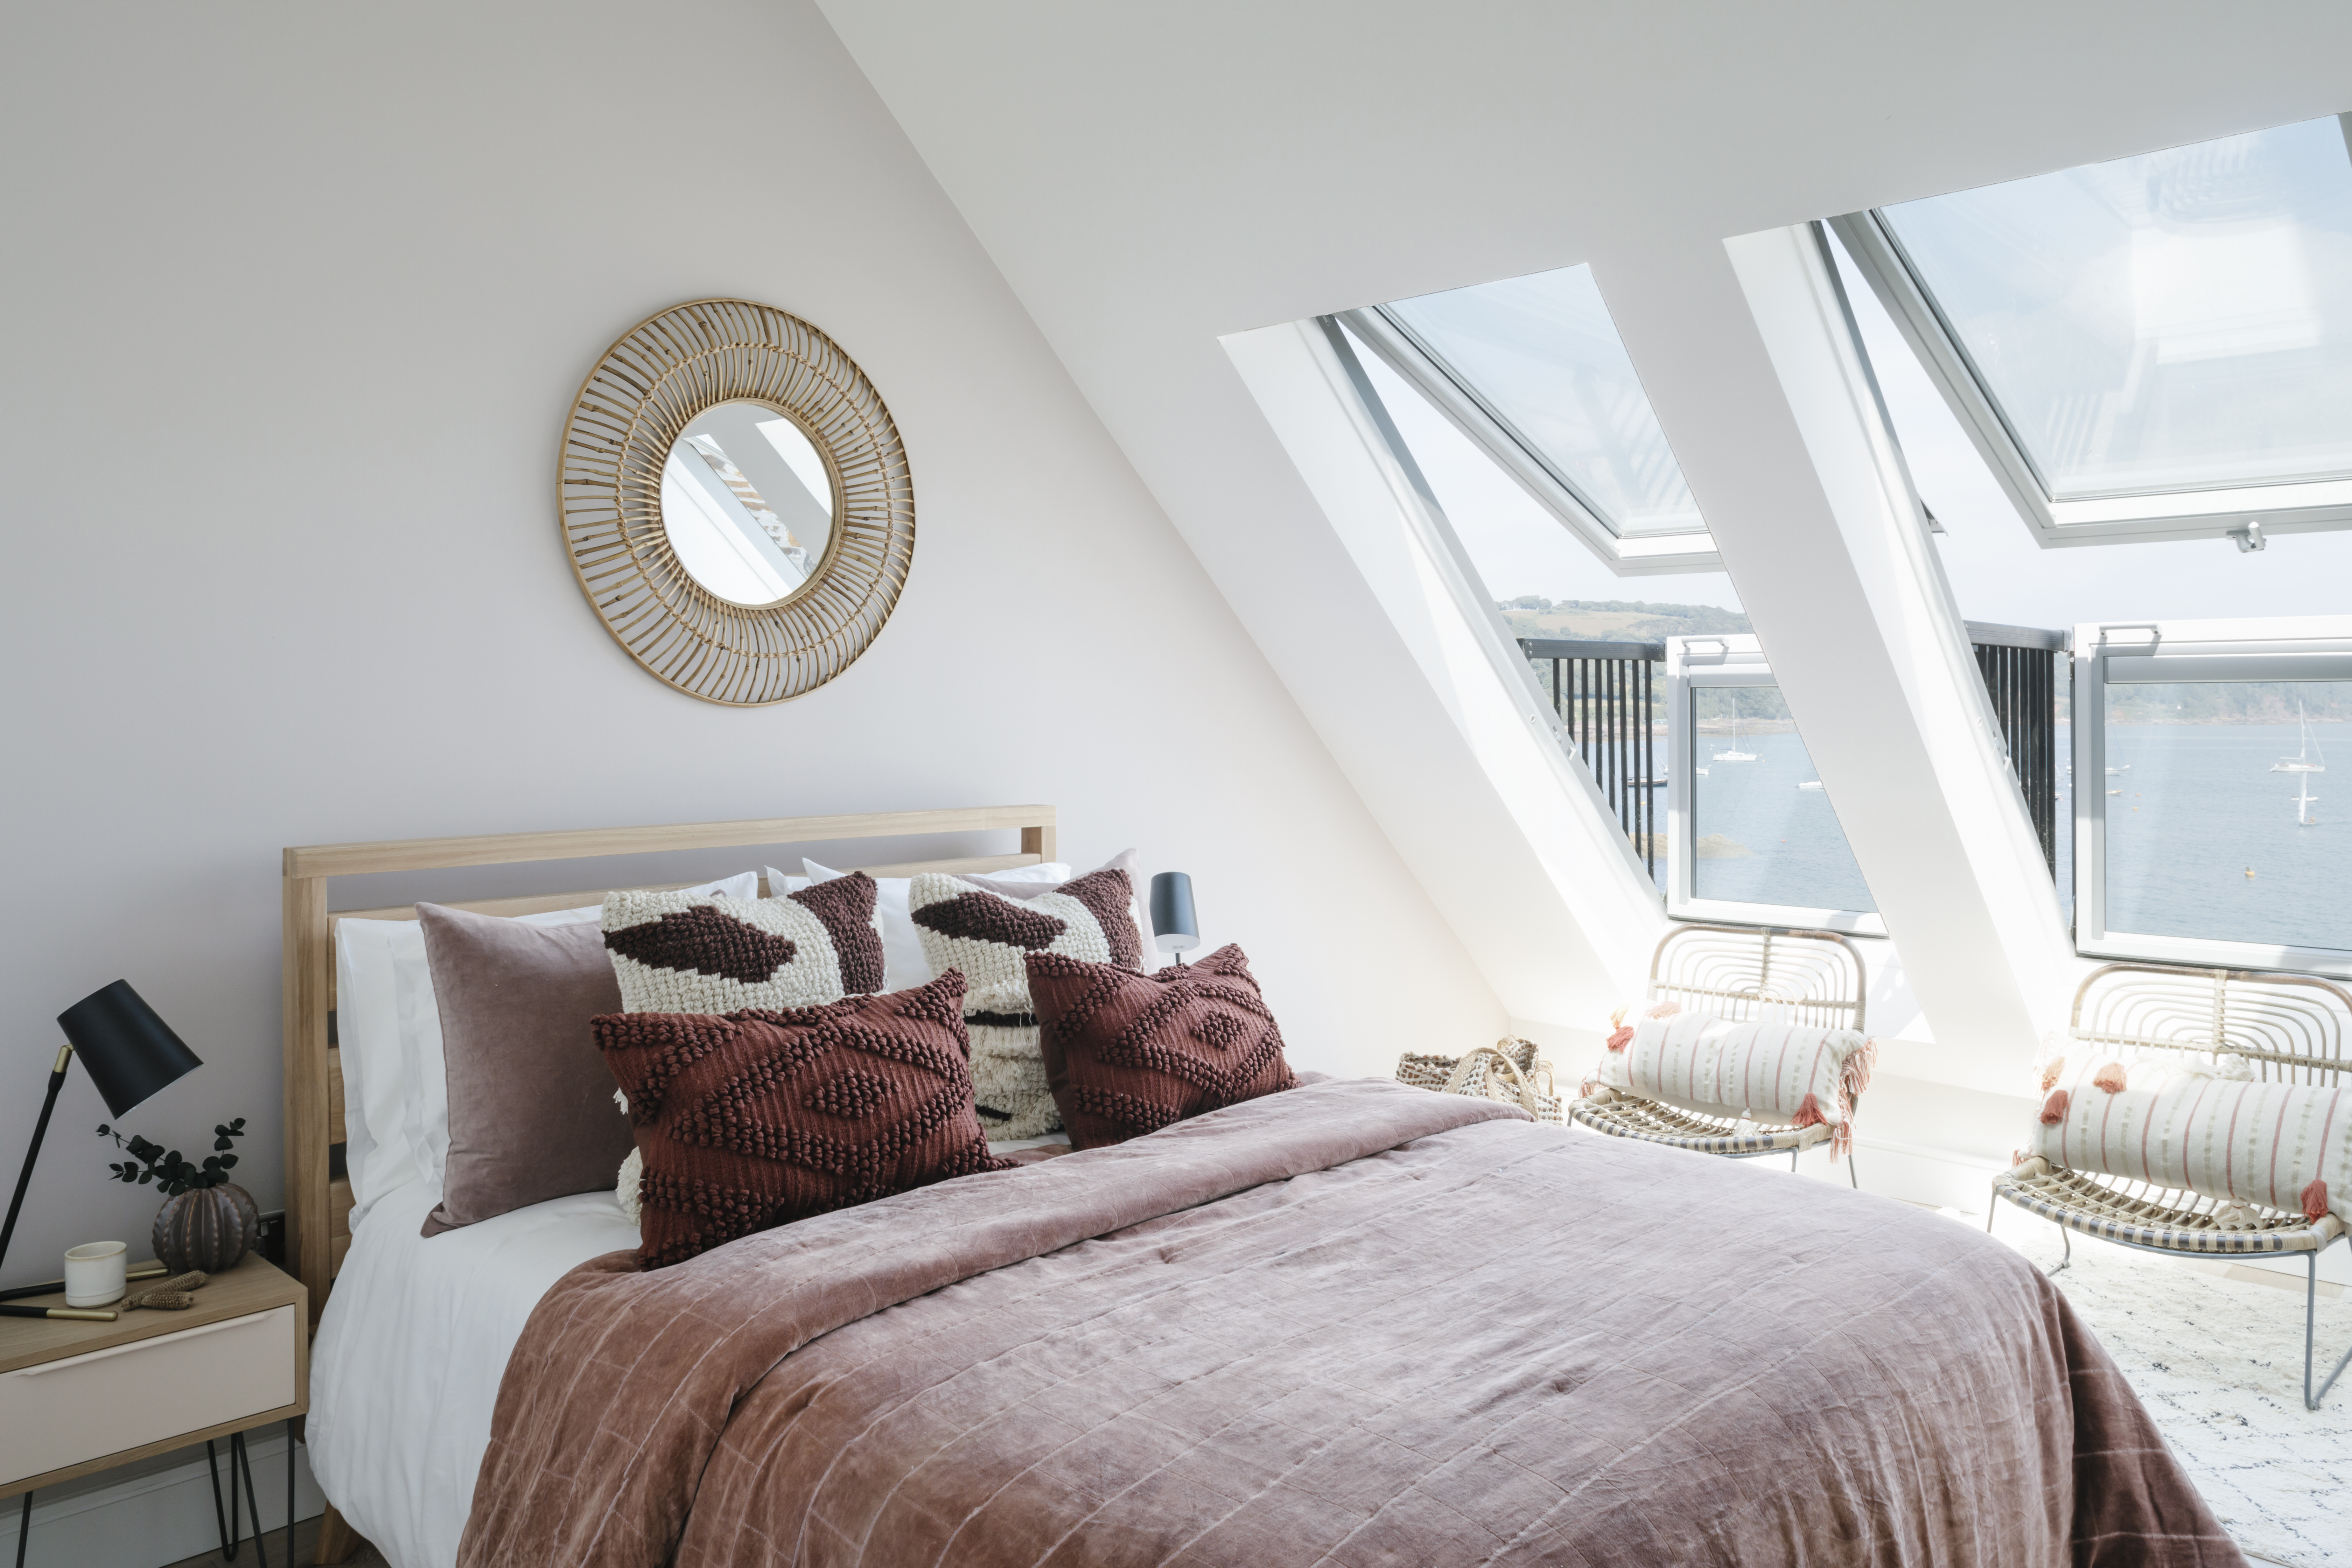 Bedroom with a view, Cawsand